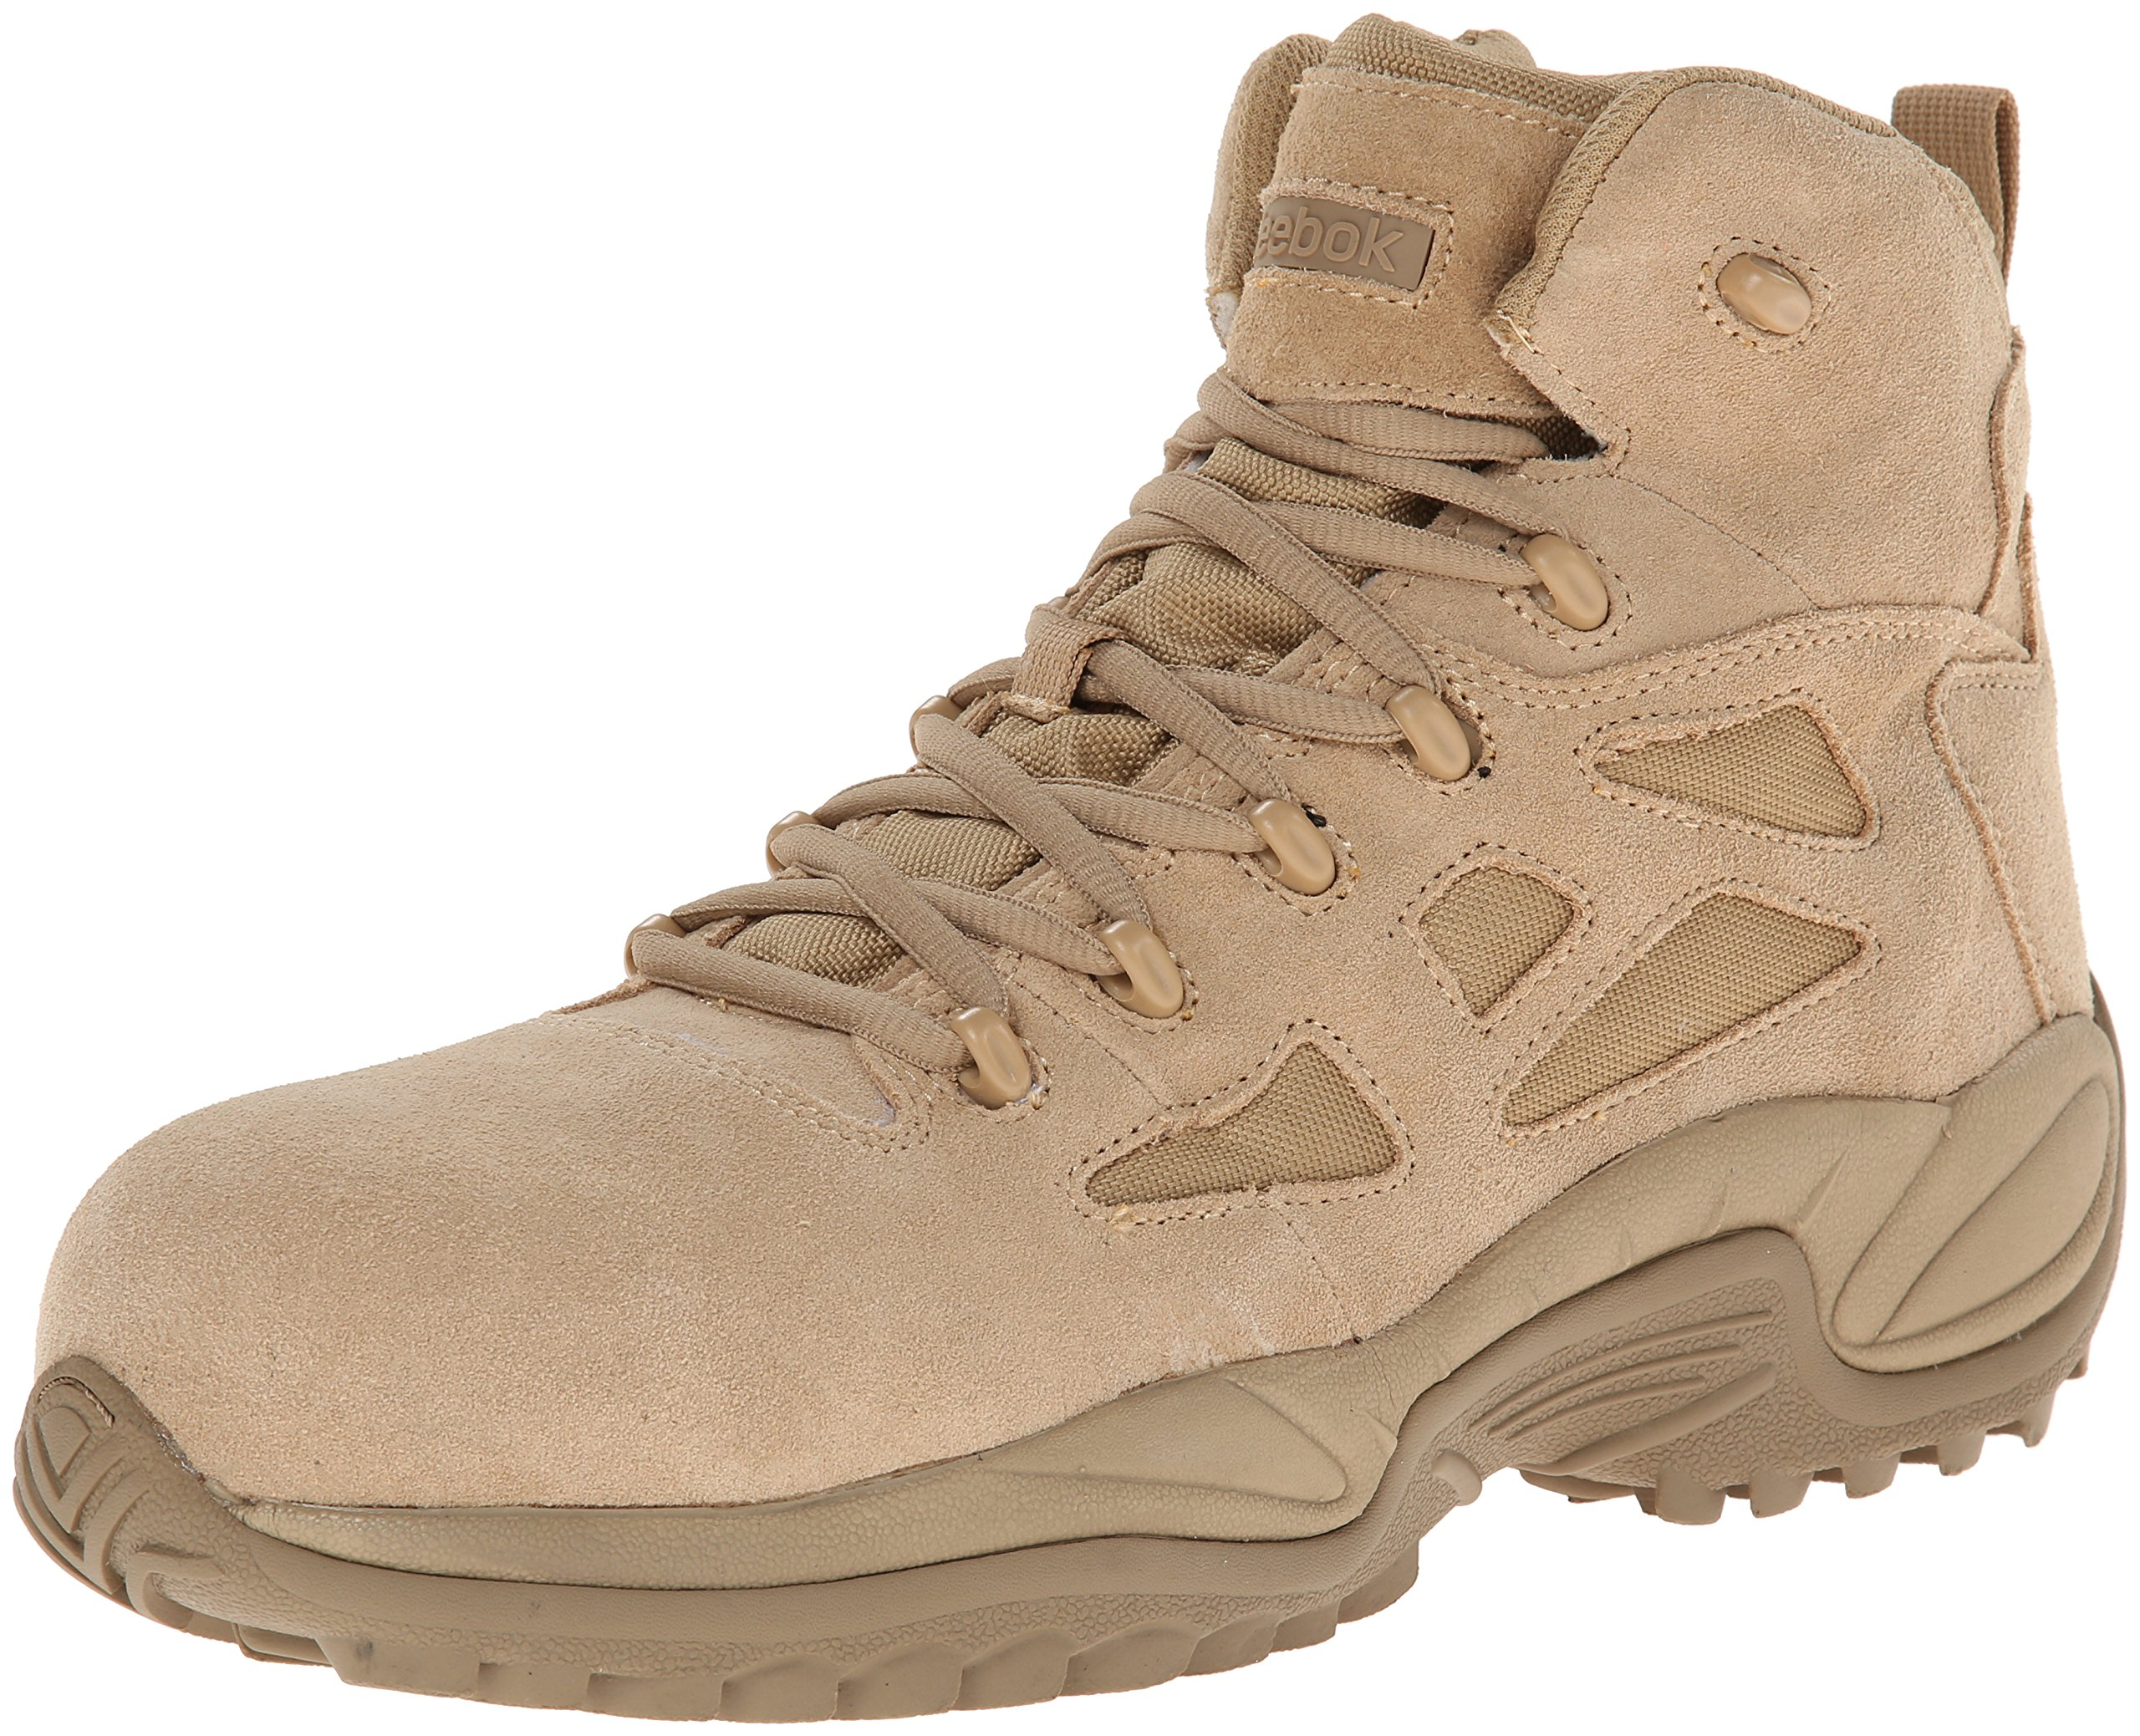 Reebok Work Men's Rapid Response RB8694 Safety Boot,Tan,10.5 W US